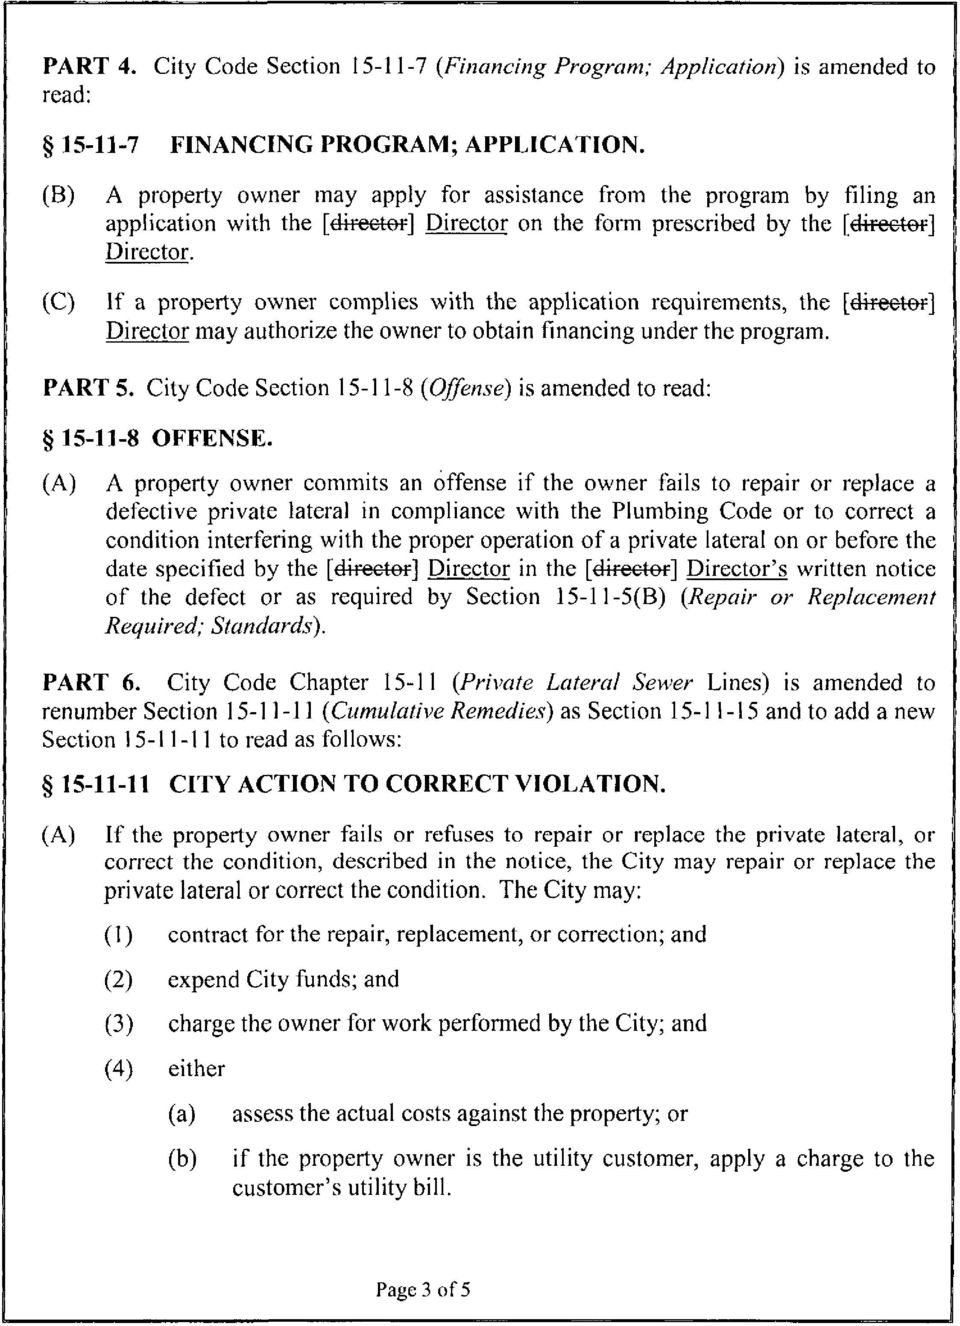 If a property owner complies with the application requirements, the [director] Director may authorize the owner to obtain financing under the program. PART 5.